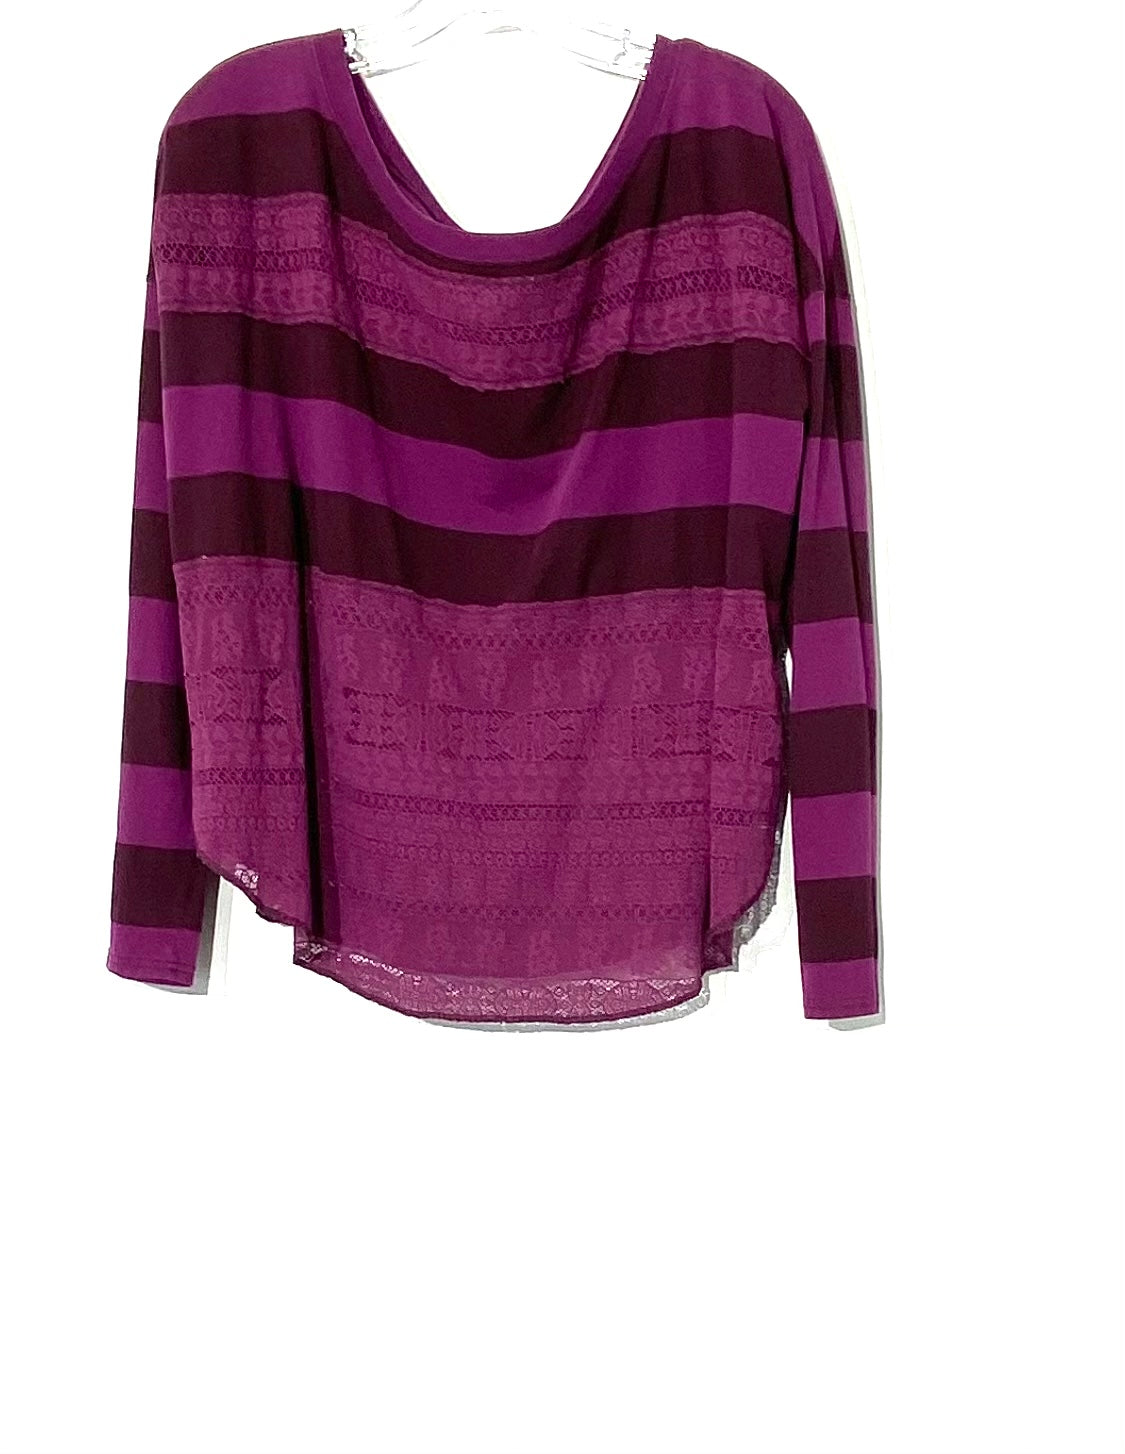 Primary Photo - BRAND: WE THE FREE <BR>STYLE: TOP LONG SLEEVE <BR>COLOR: PURPLE <BR>SIZE: M <BR>SKU: 262-26275-61106